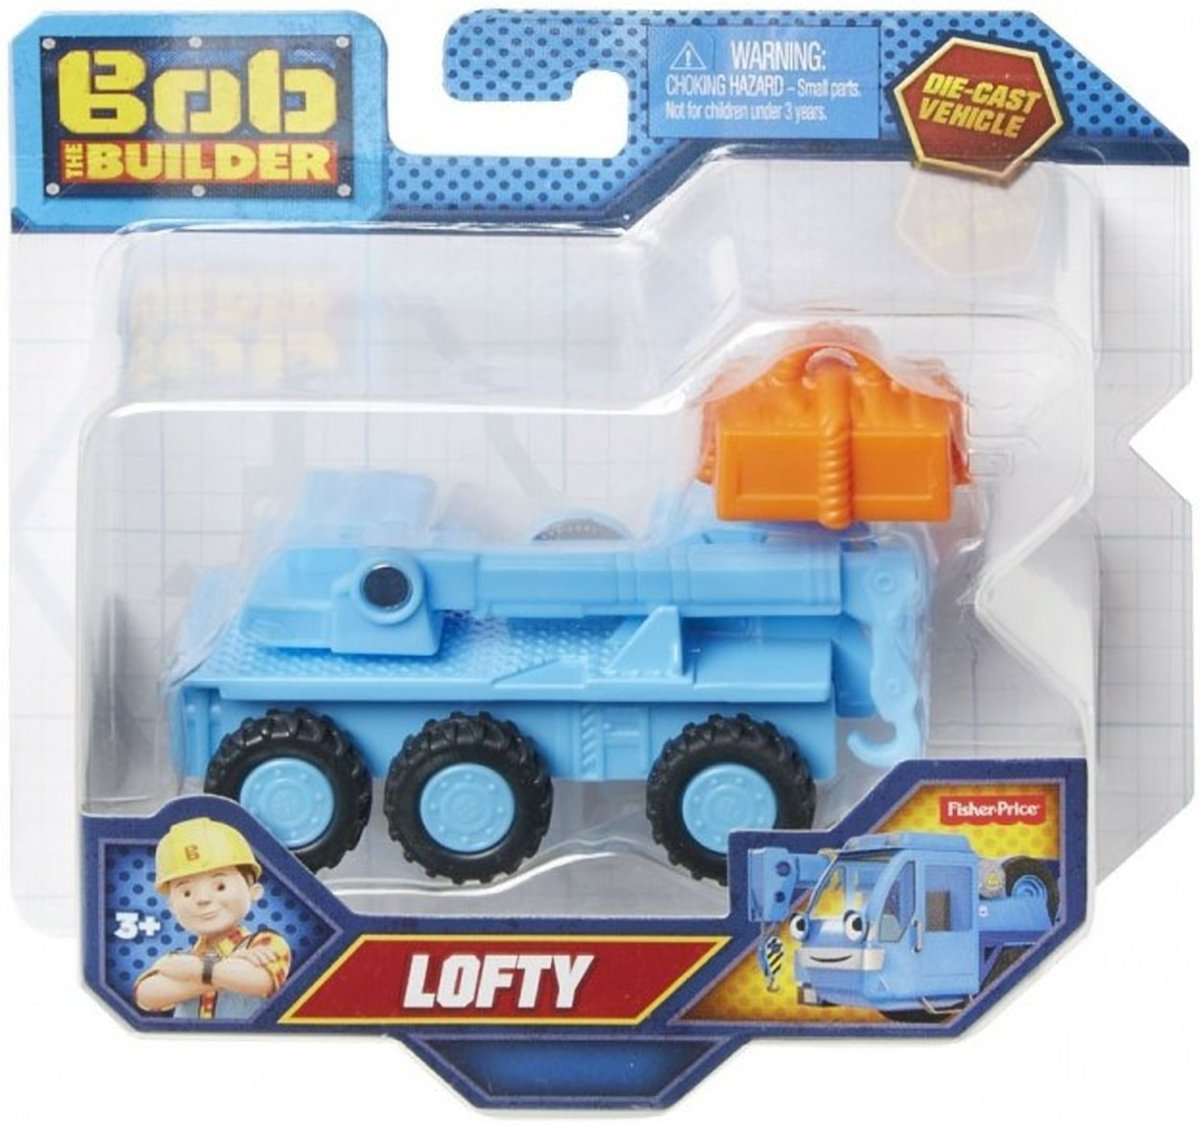 Bob De Bouwer Die-Cast Vehicle Lofty